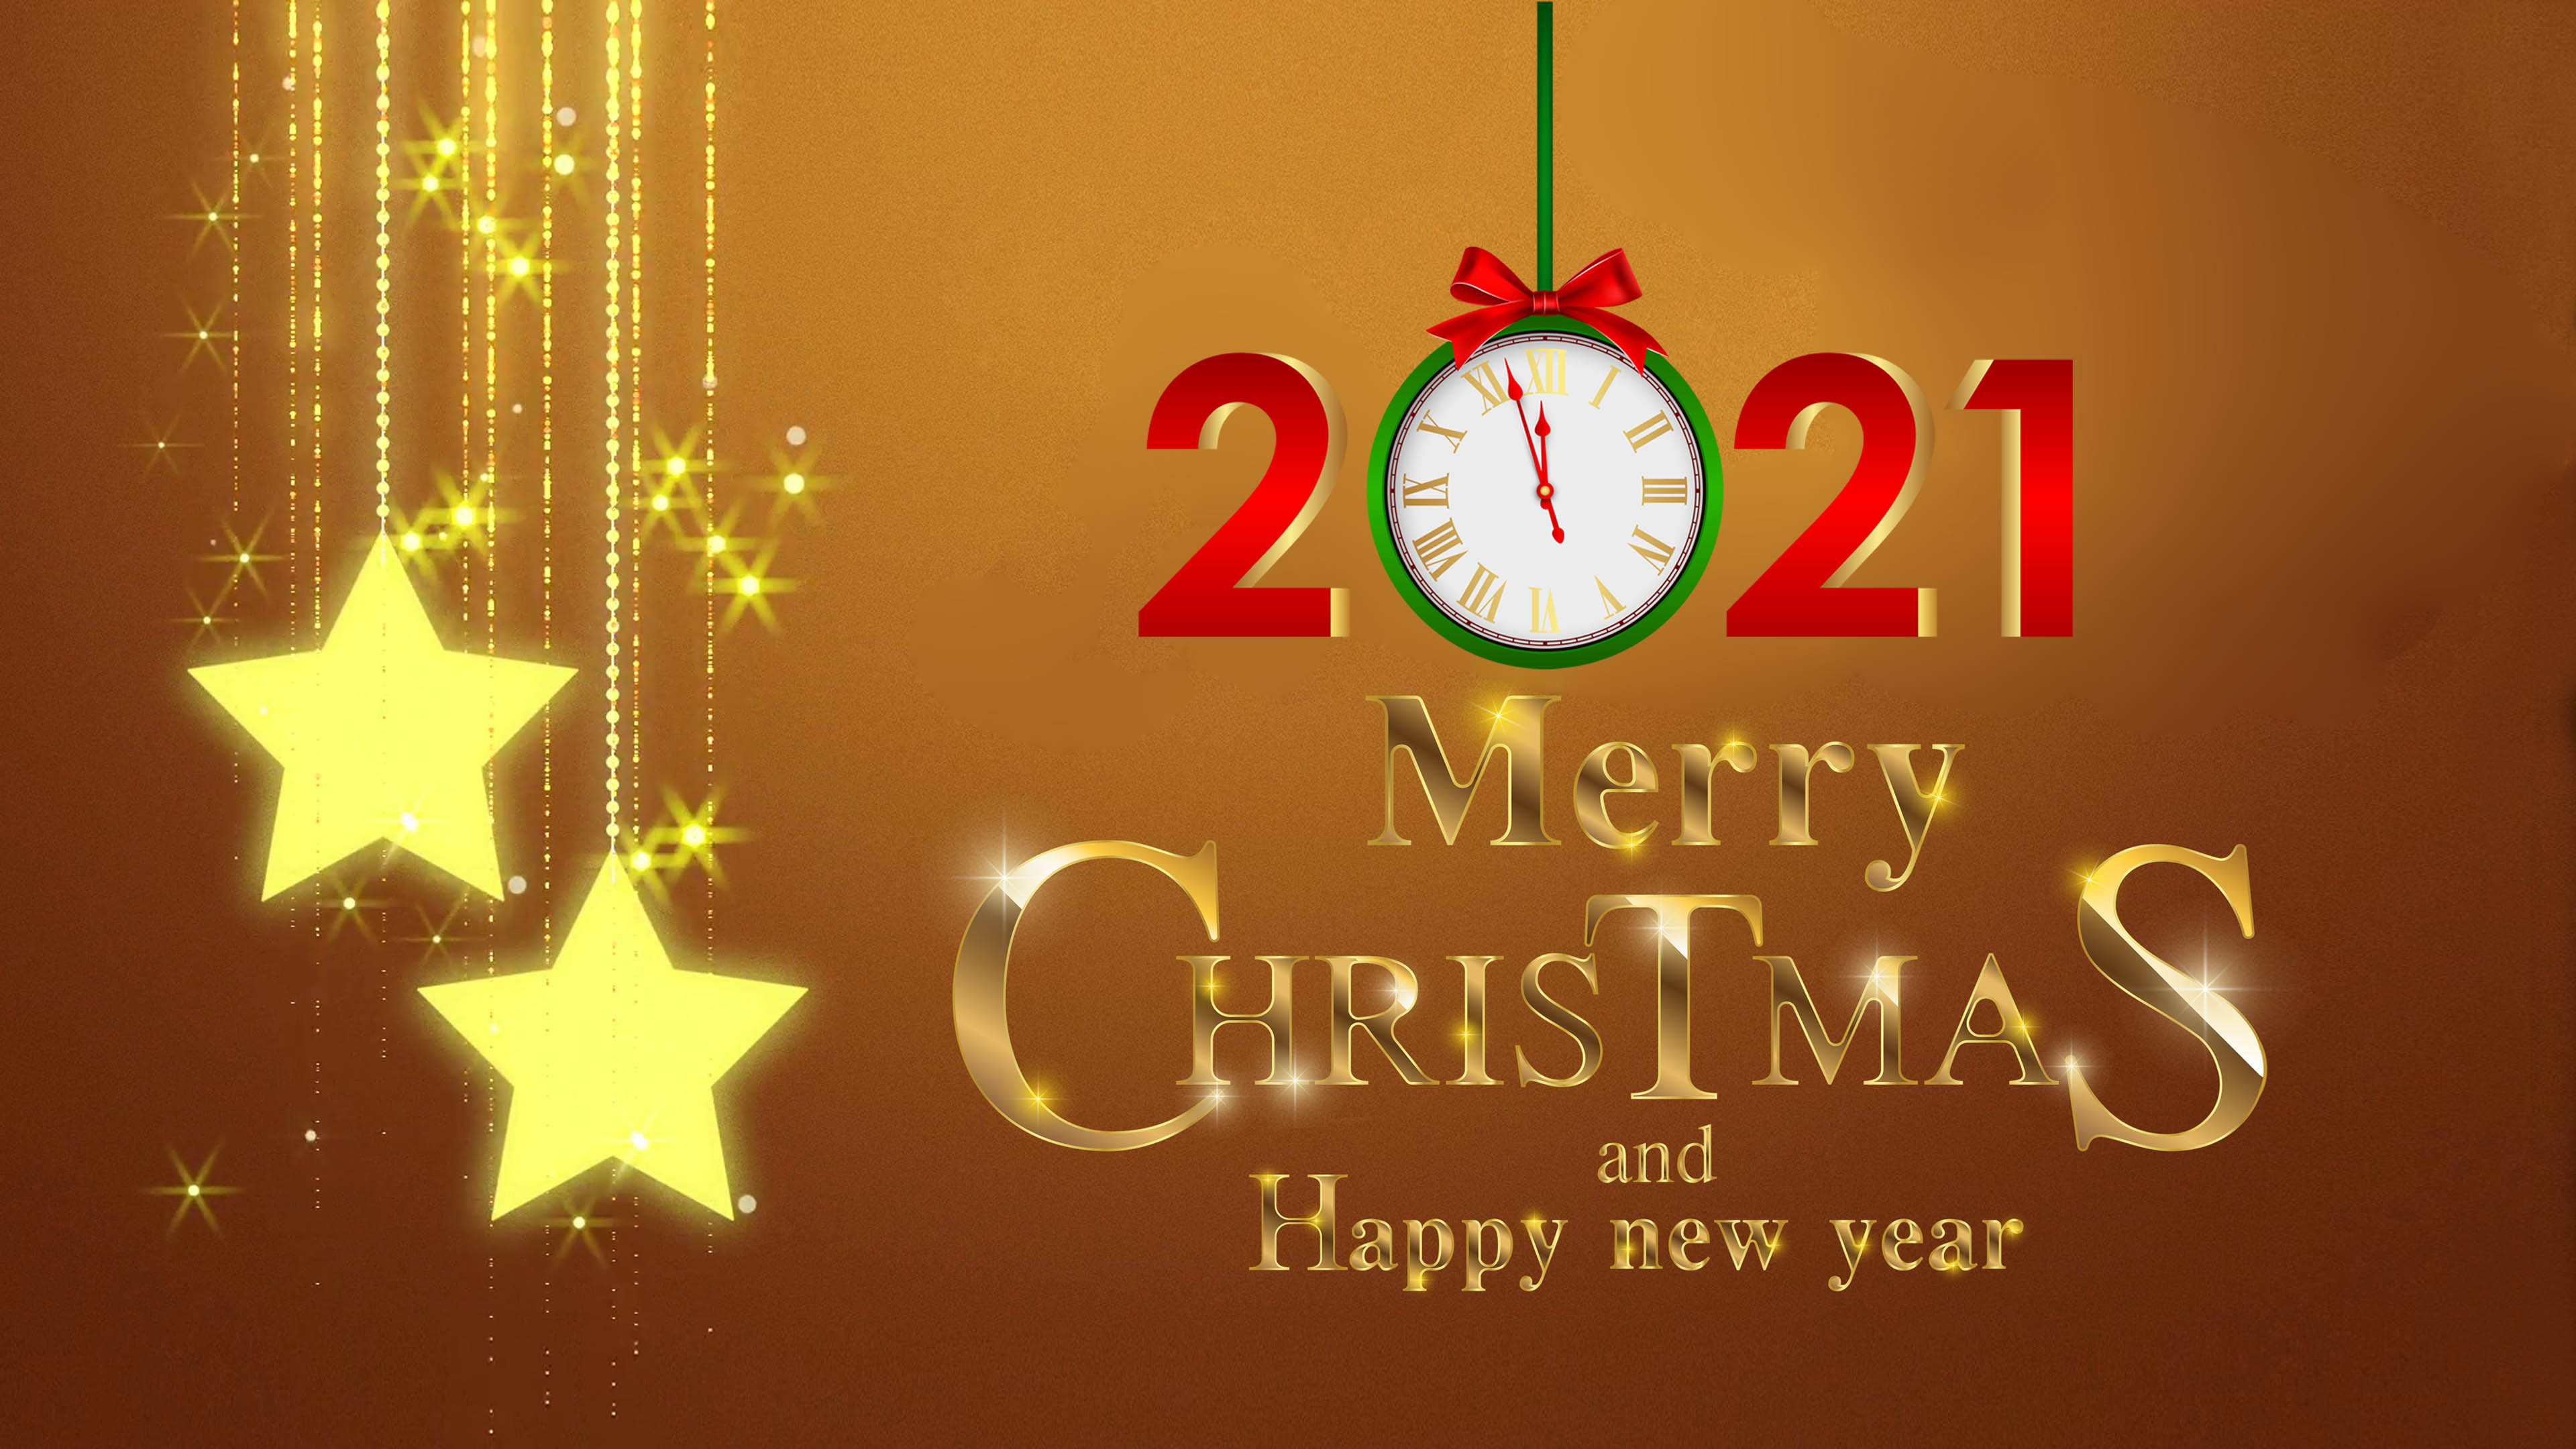 2021 Happy Merry Christmas And Happy New Year Wallpaper Lake Up In Mountain Merry Christmas And Happy New Year 2021 Hd Wallpapers Wallpaper Cave